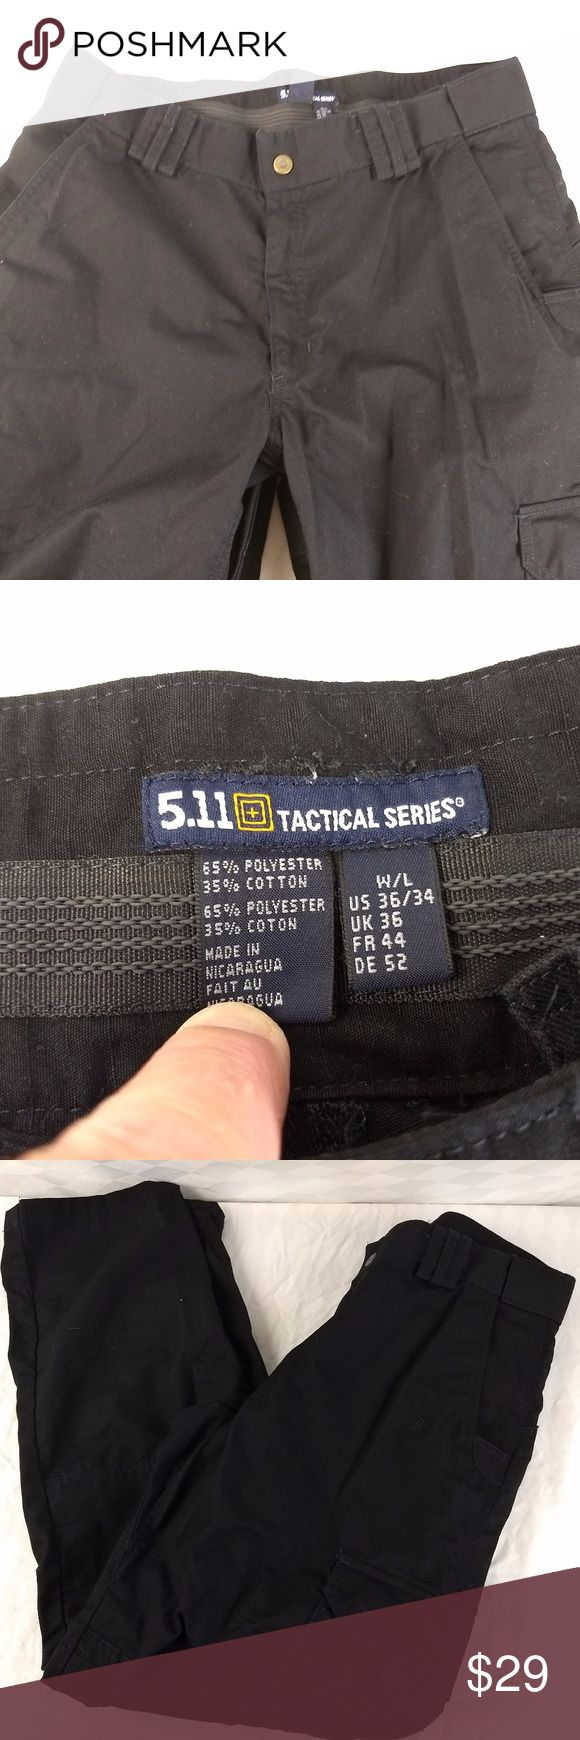 "511 TACTICAL SERIES MENS PANTS 5.11 MILITARY 33X33 PLEASE NOTE THE ACTUAL MEASUREMENTS!  TAG SAYS A SIZE 36X34.  I MEASURE 33X33! 511 TACTICAL PANTS.  BLACK 36X34.  MILITARY, SECURITY, POLICE, TACTICAL, BUG OUT, FIRST RESPONDER, LAW ENFORCEMENT.   65/35 Poly Cotton Blend.  EXTREMELY RUGGED, and expensive slacks in excellent condition showing virtually no wear.   Sealable Pouches for supplies / ammo / carry.   5.11 TACTICAL EXTREMELY HIGH QUALITY BRAND. ACTUAL MEASURES:   WAIST:  33"" INSEAM…"